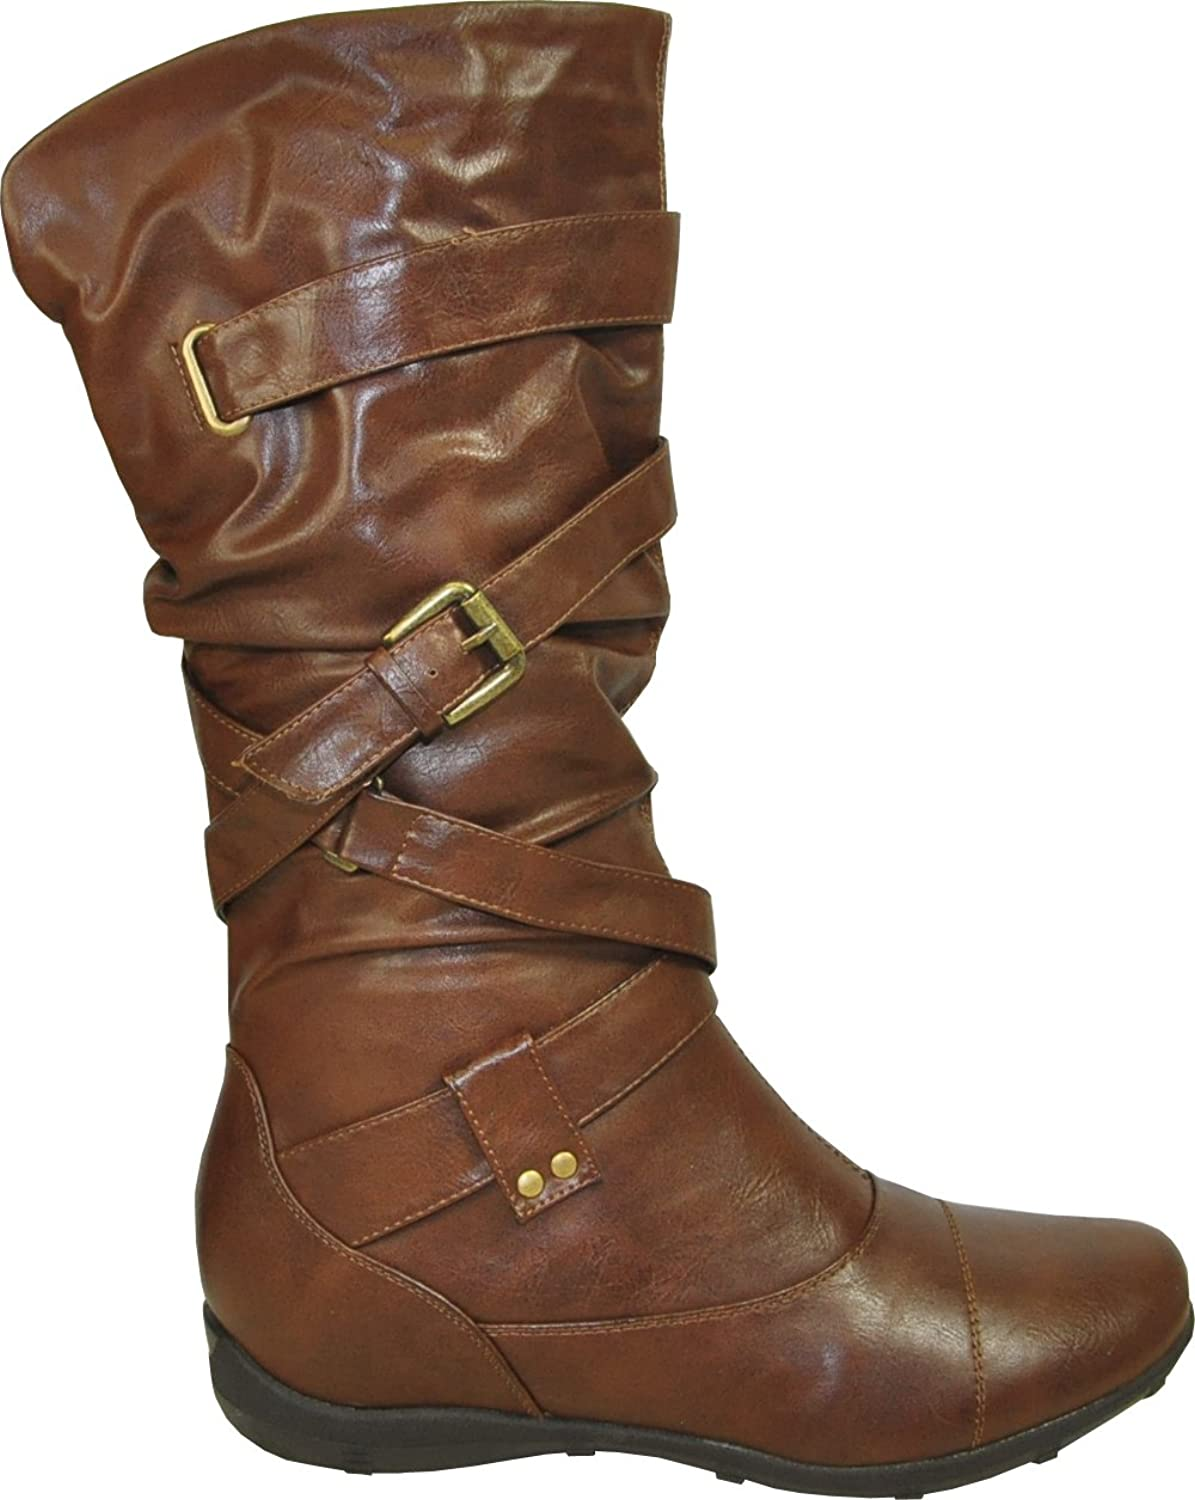 Deluxe Adult Costumes - Assassin's Creed Women's Casual Buckle Straps Round Toe Brown Faux Leather Boots